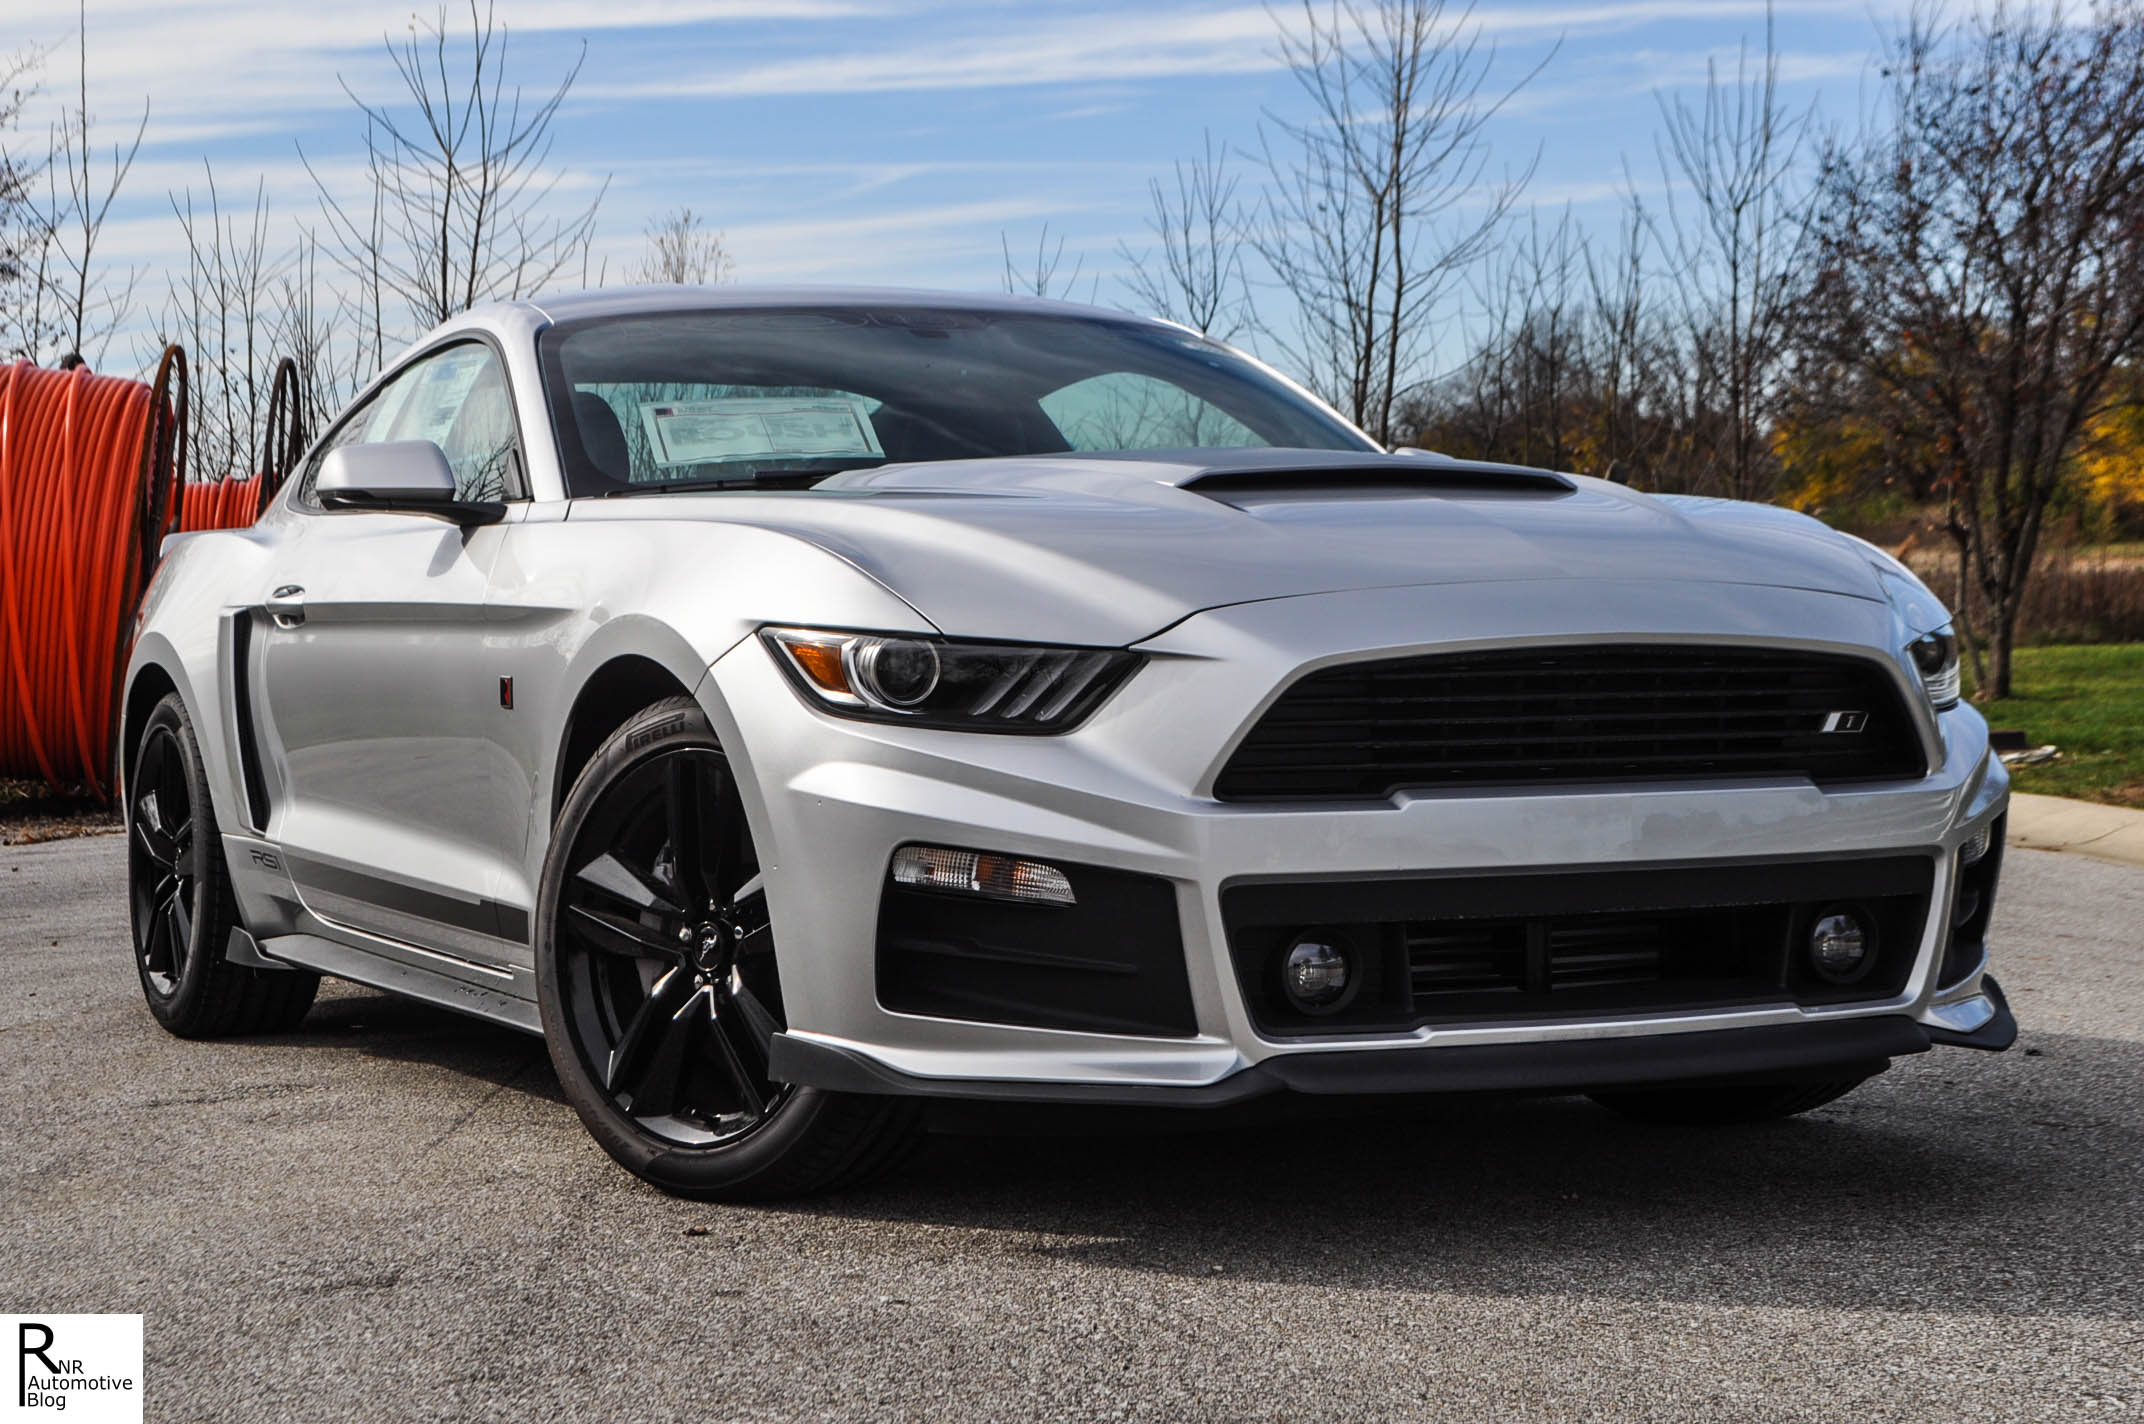 10 Best Cars For Tall People No More Cramming: 2015 Roush Mustang Stage 1 Review